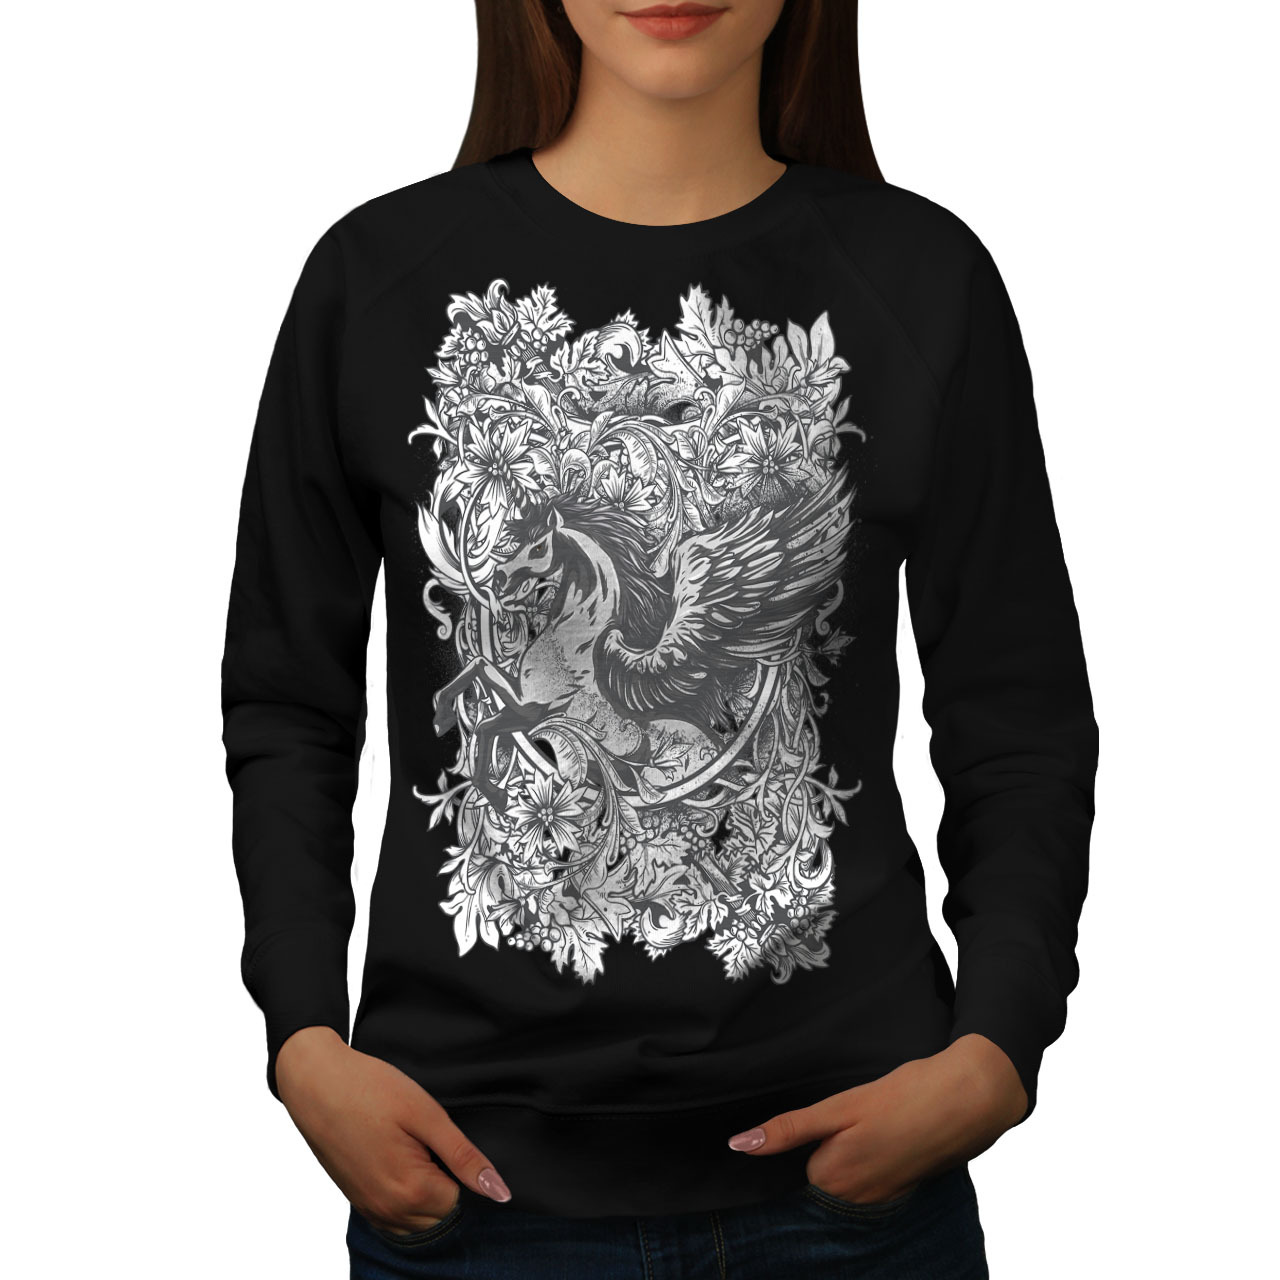 Primary image for Epic Unicorn Horse Jumper Mythical Women Sweatshirt